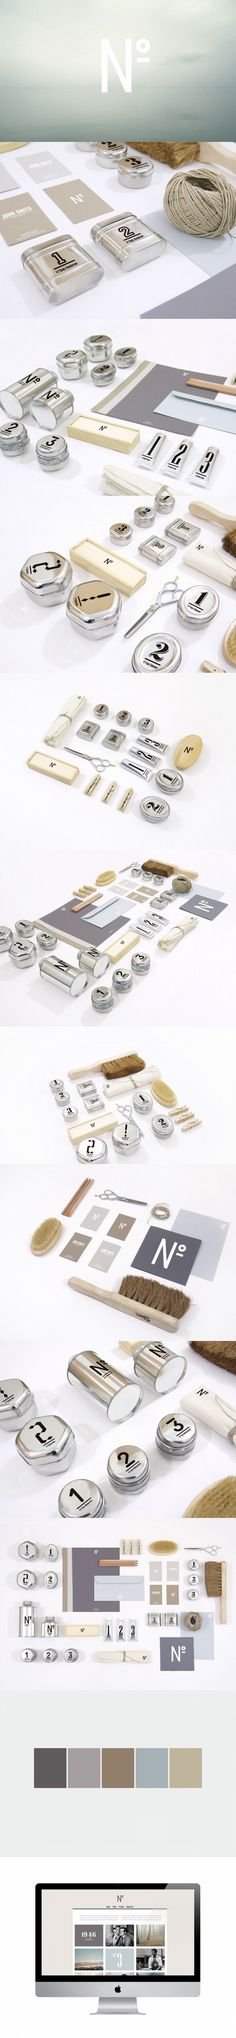 NO mens skin care branding by Shou Wei Tsai 09 NO. mens skin care branding by Shou Wei Tsai